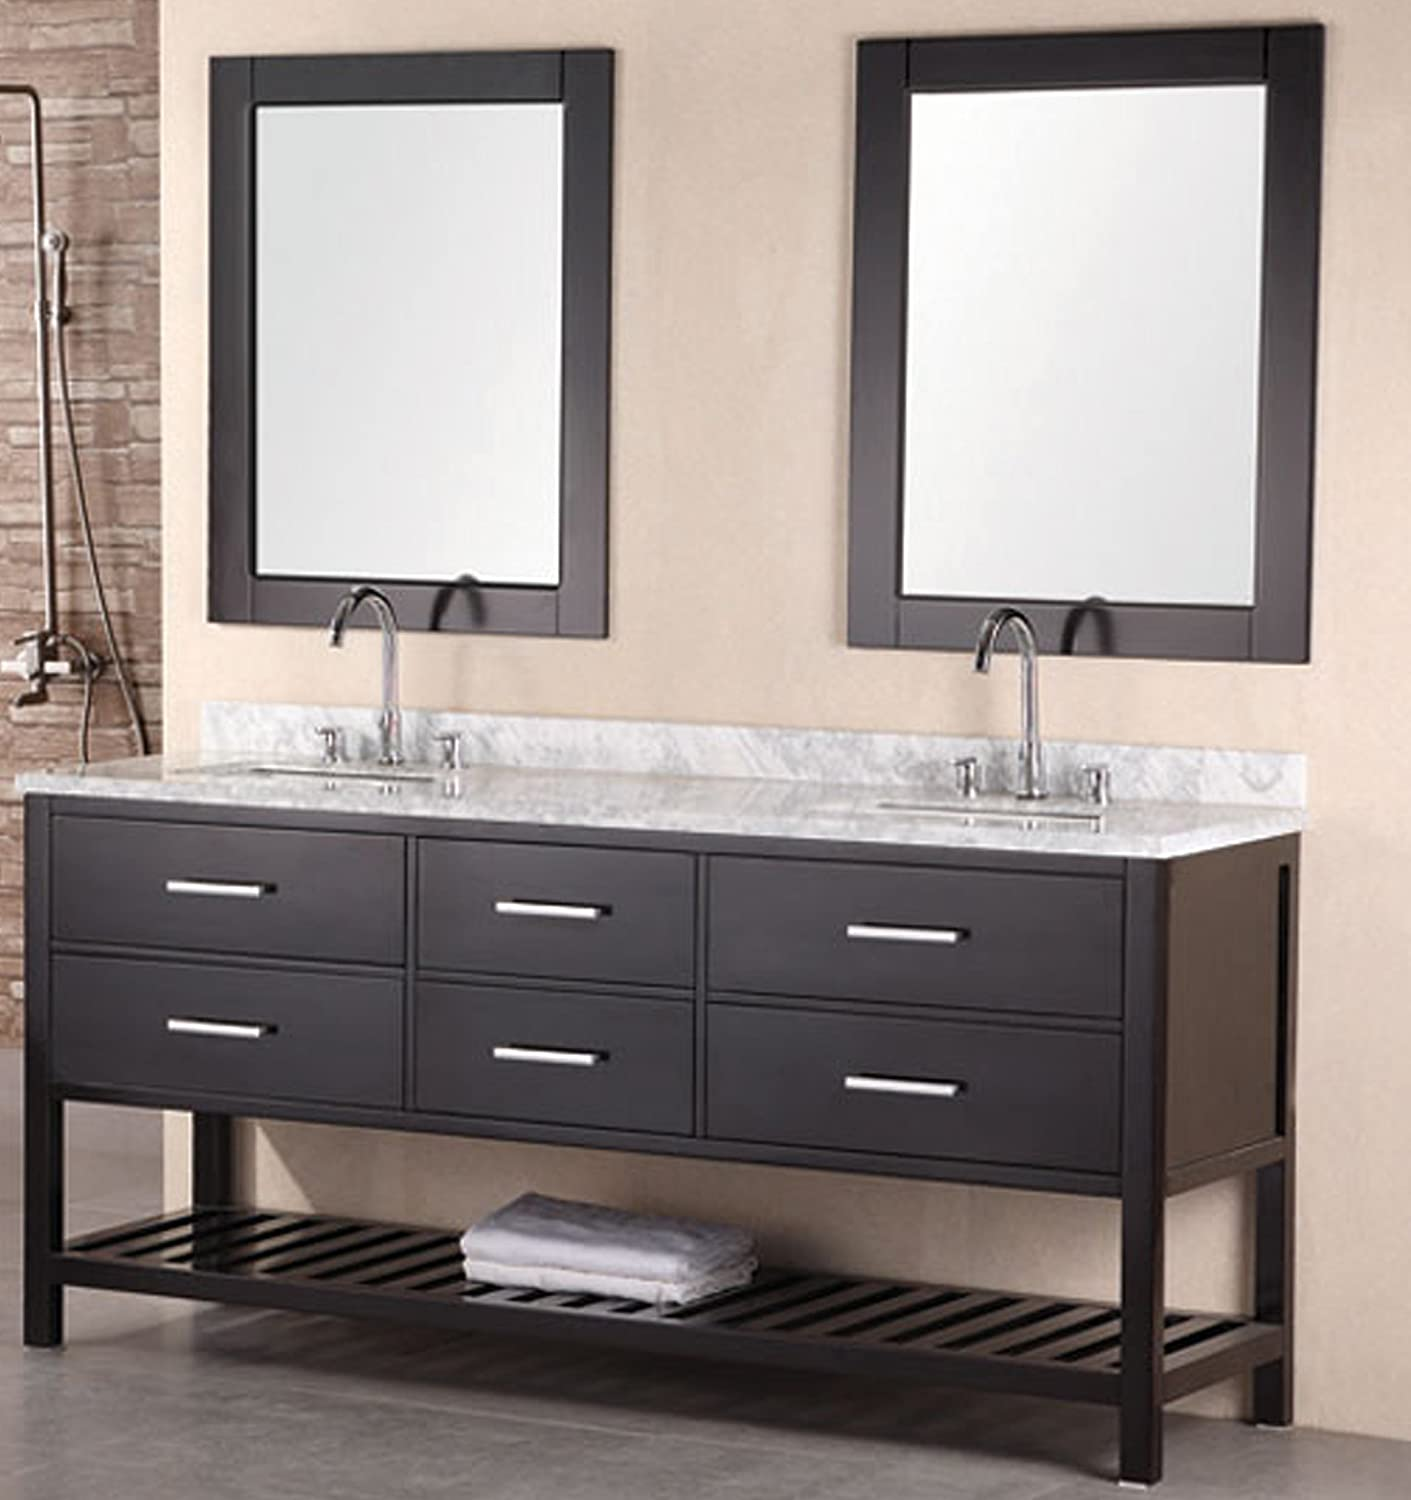 design element dec077b london 72 inch double sink vanity set vanity mirrors amazoncom - Bathroom Cabinets Kzn